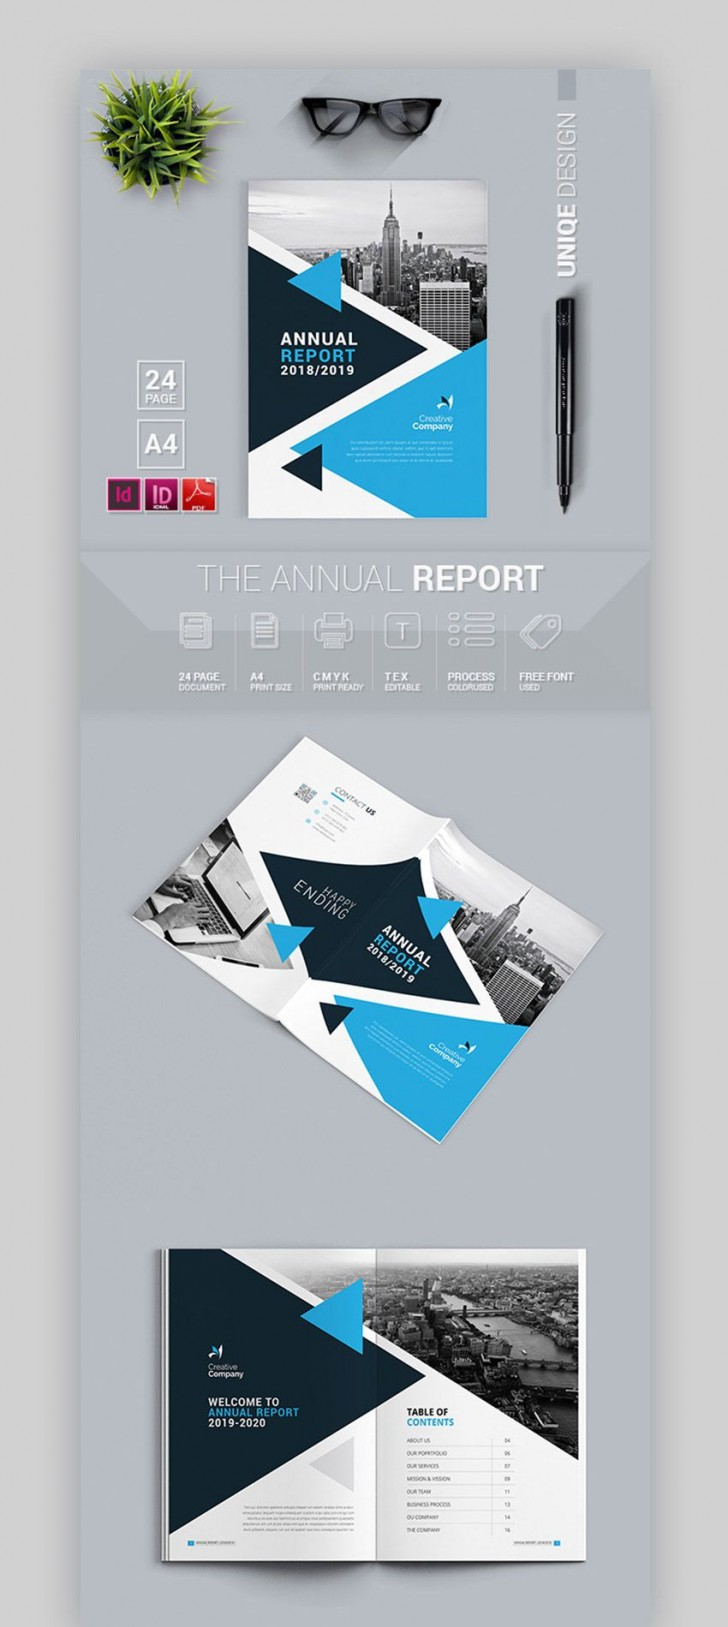 001 Fascinating Annual Report Design Template Indesign  Free Download728